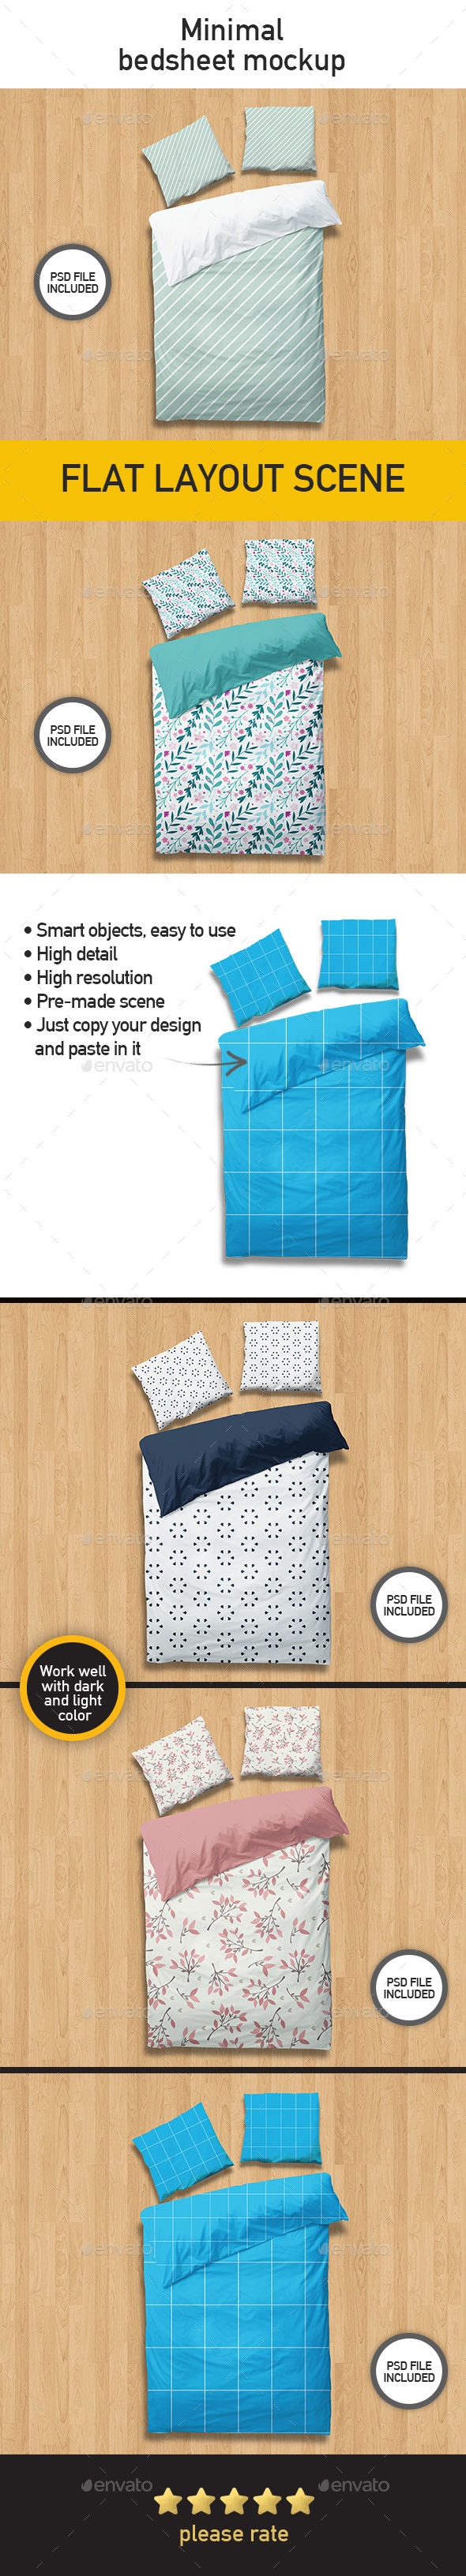 Bed Sheet Mockup with Minimal Style - Miscellaneous Print